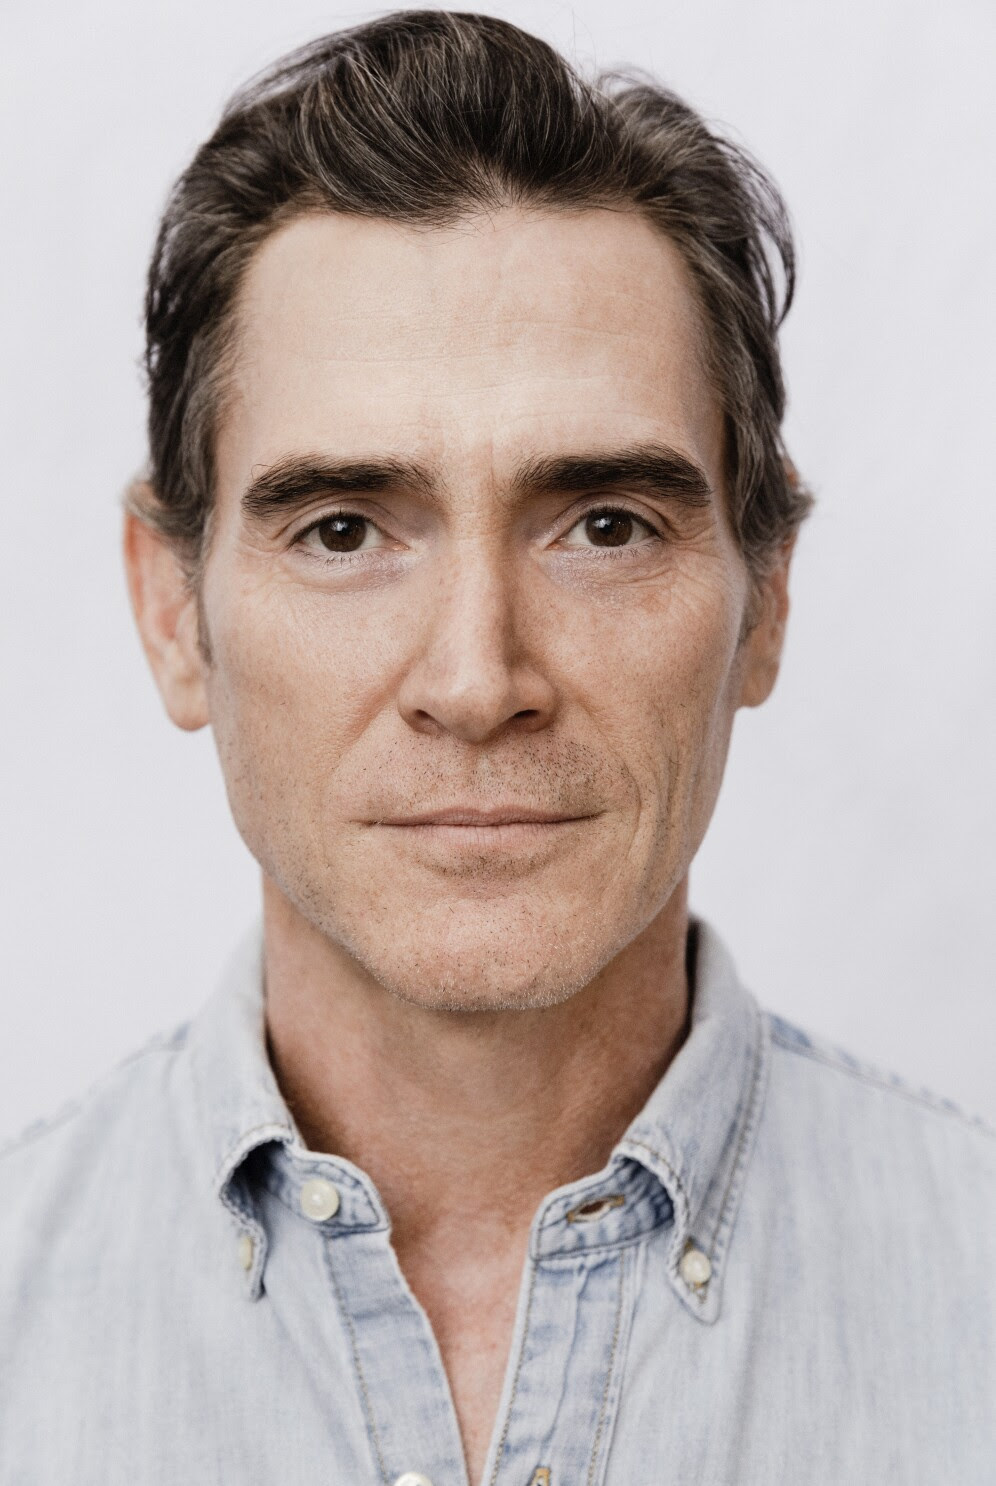 'The Morning Show': This 'oh, crap' moment made Billy Crudup